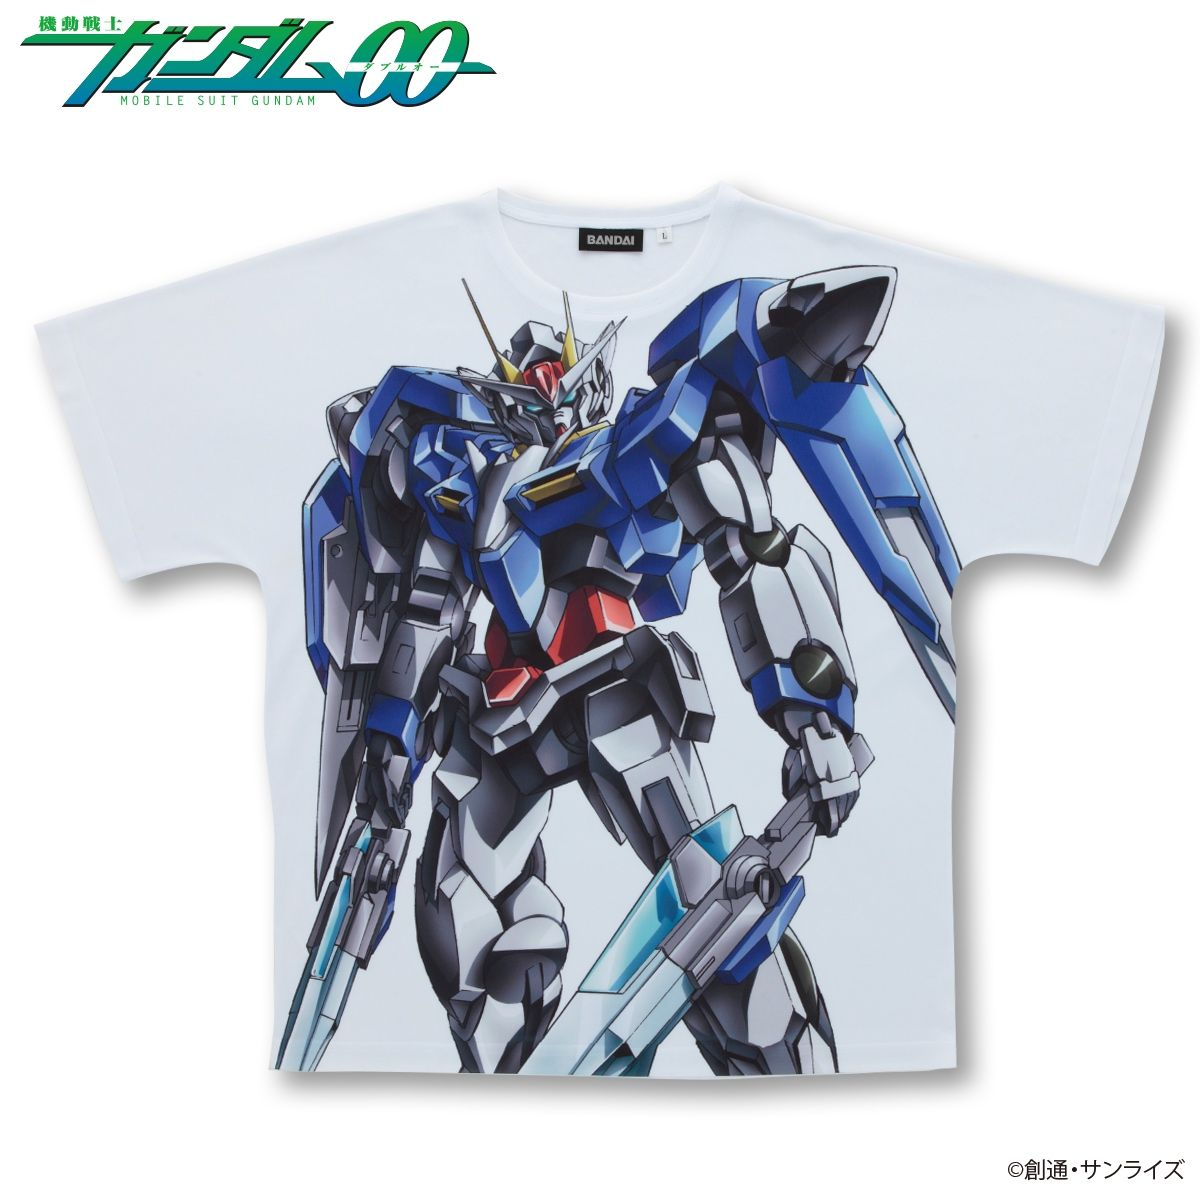 Mobile Suit Gundam 00 Full panel Tshirt Series No3